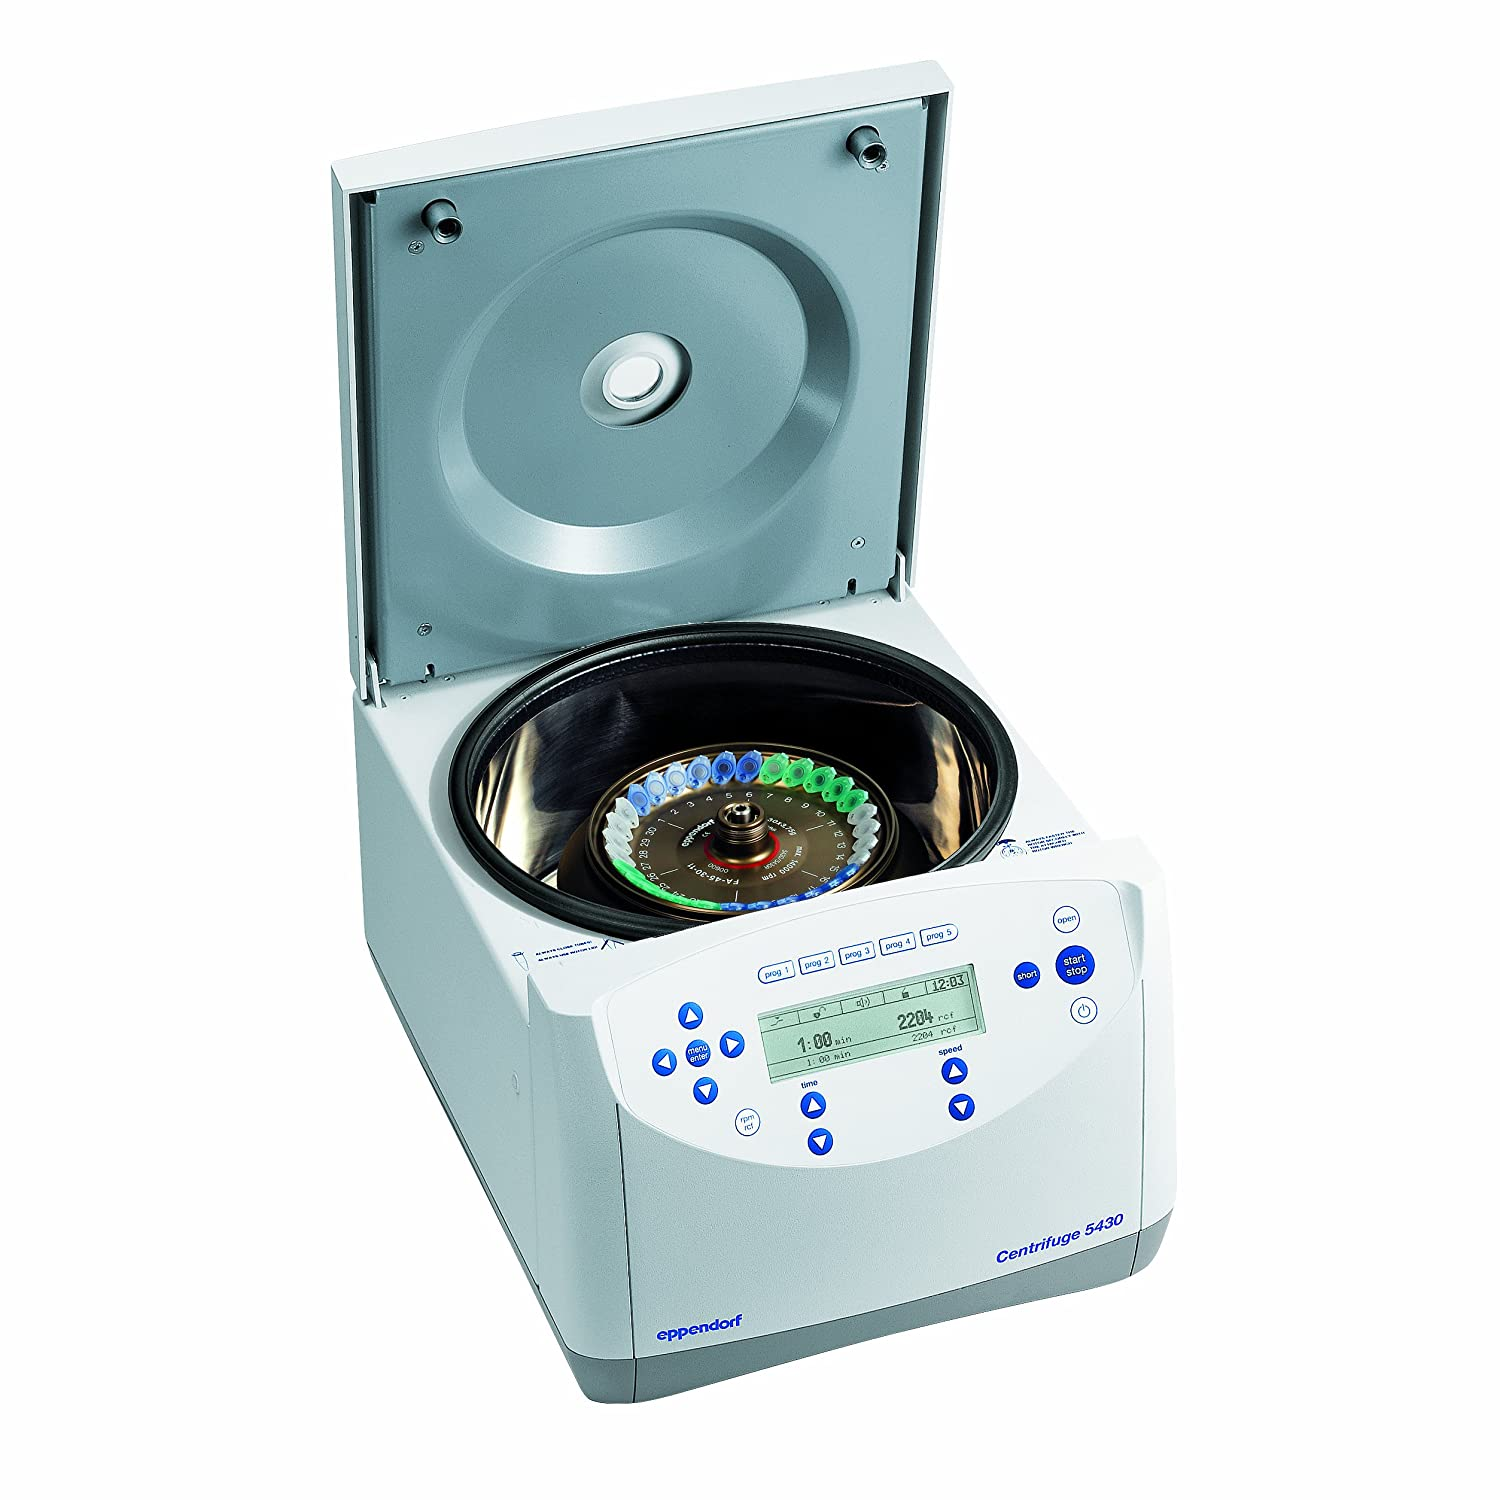 120 V//60 Hz Eppendorf 022620596 5430 Microcentrifuge with Knob Control without Rotor